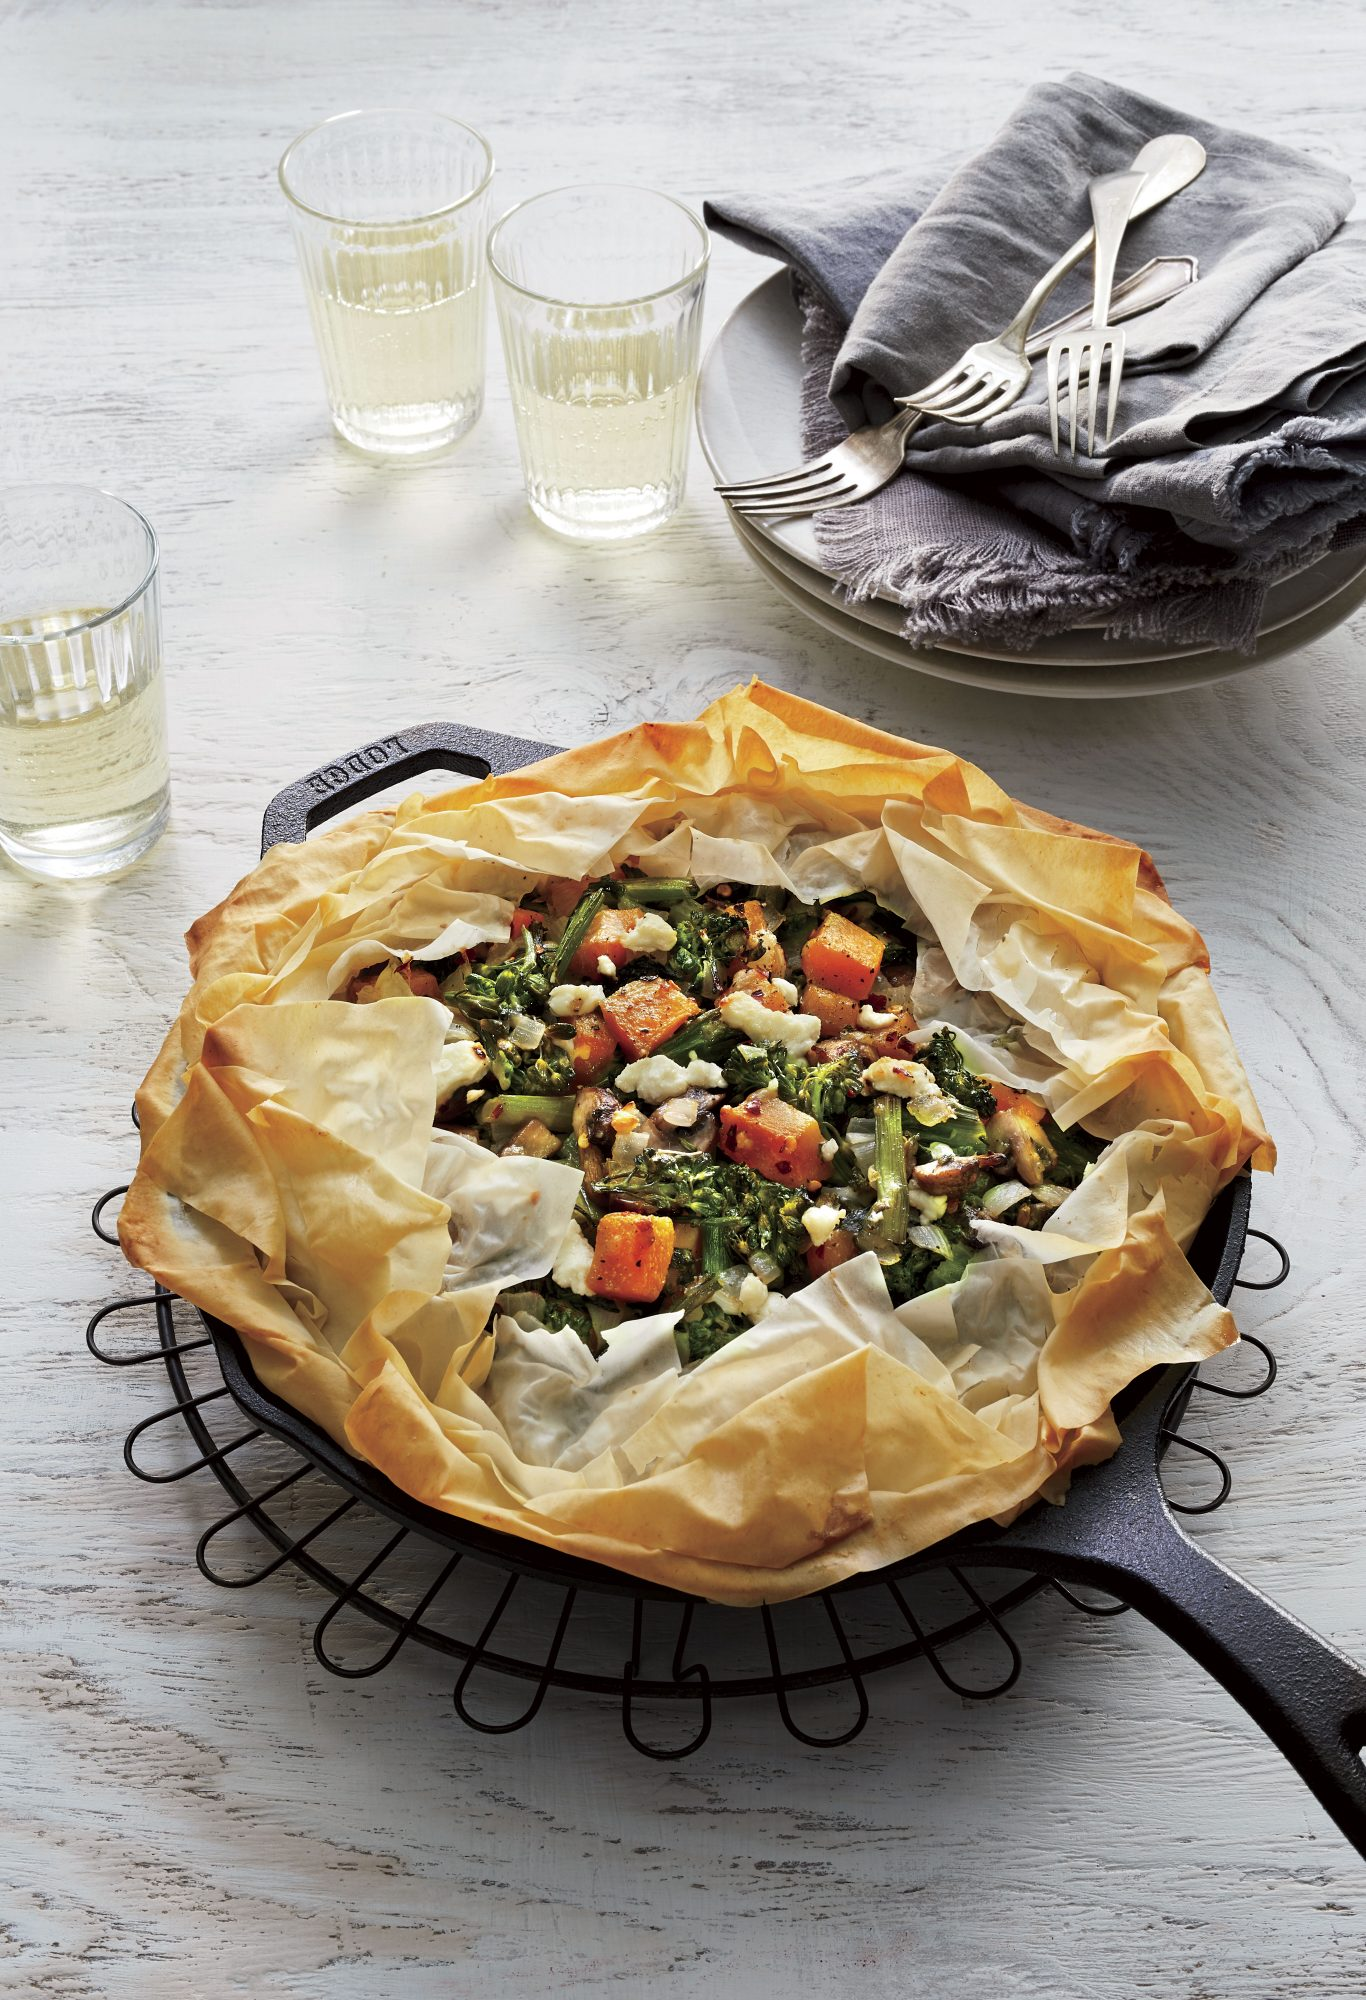 Skillet Vegetable Pie with Goat Cheese